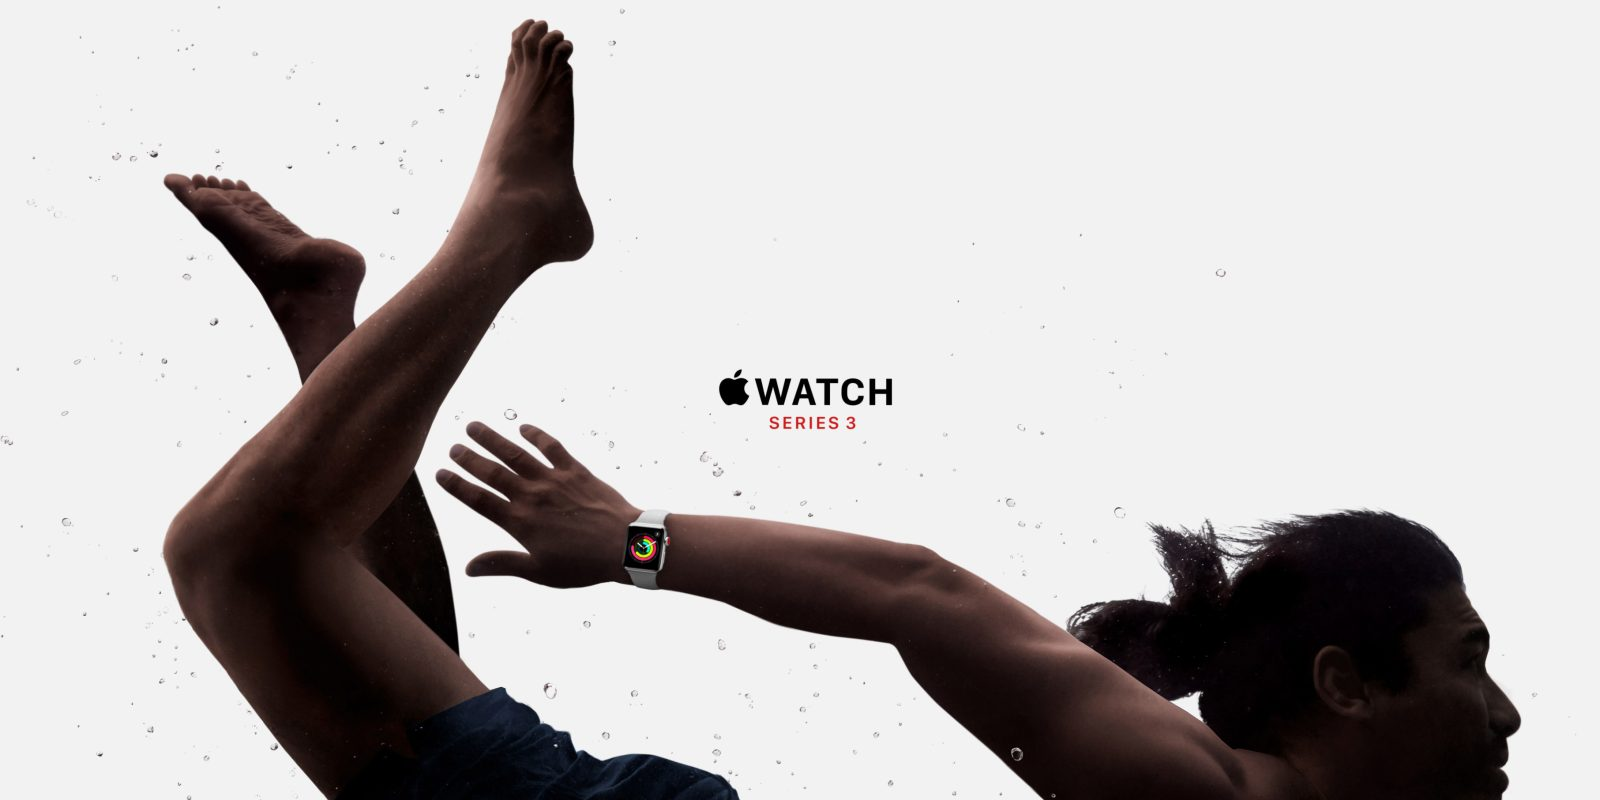 Apple Watch Series 3 Cellular hits Amazon all-time low at $199 (Reg. up to $299)